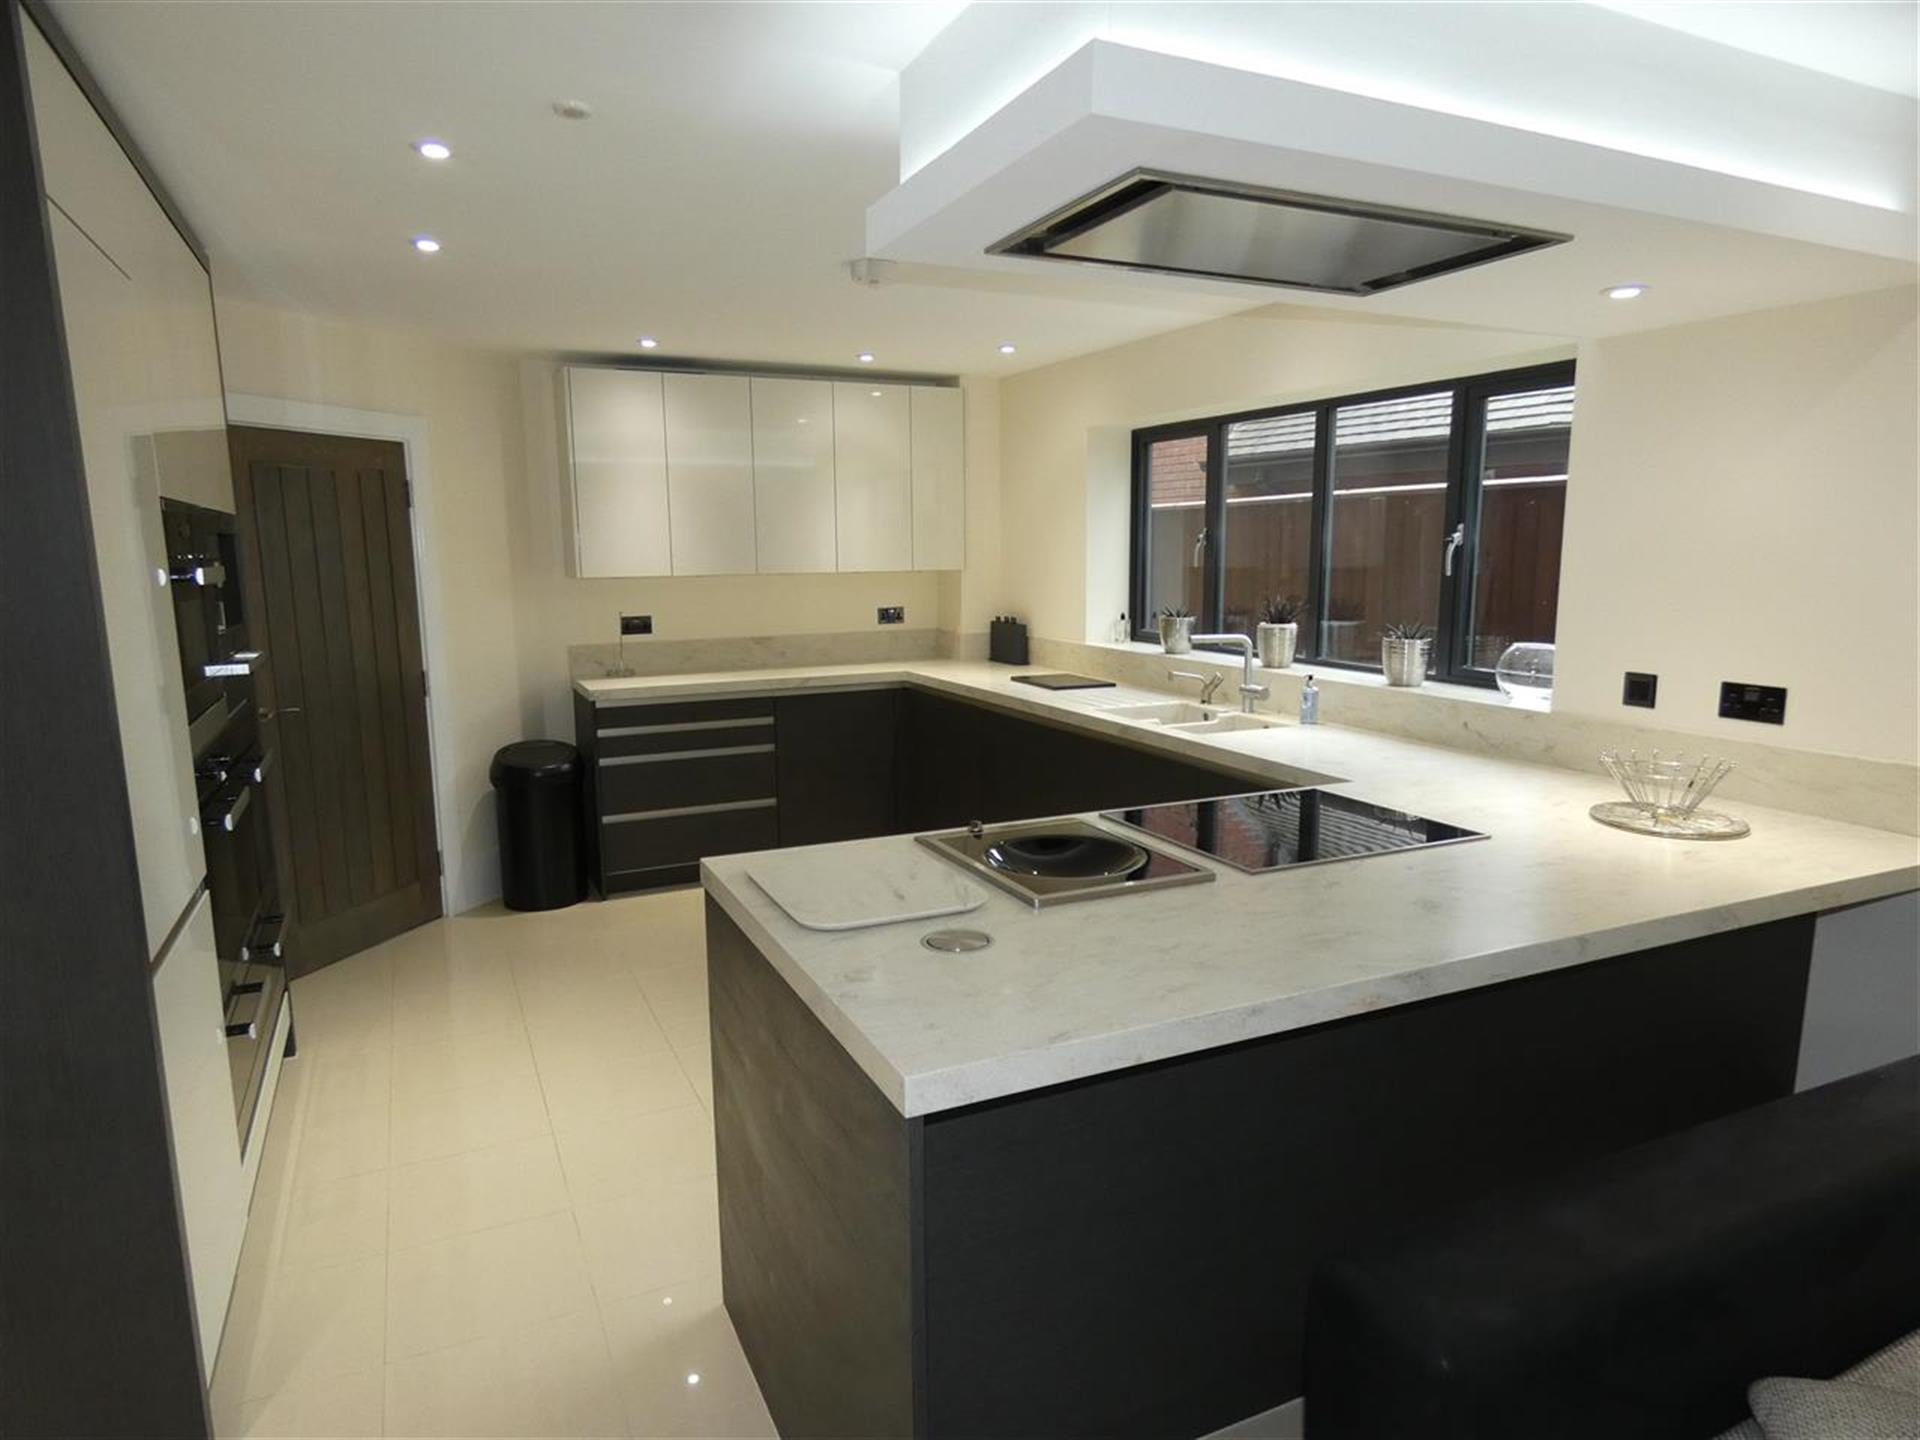 6 Bedroom Detached House For Sale - Kitchen Diner